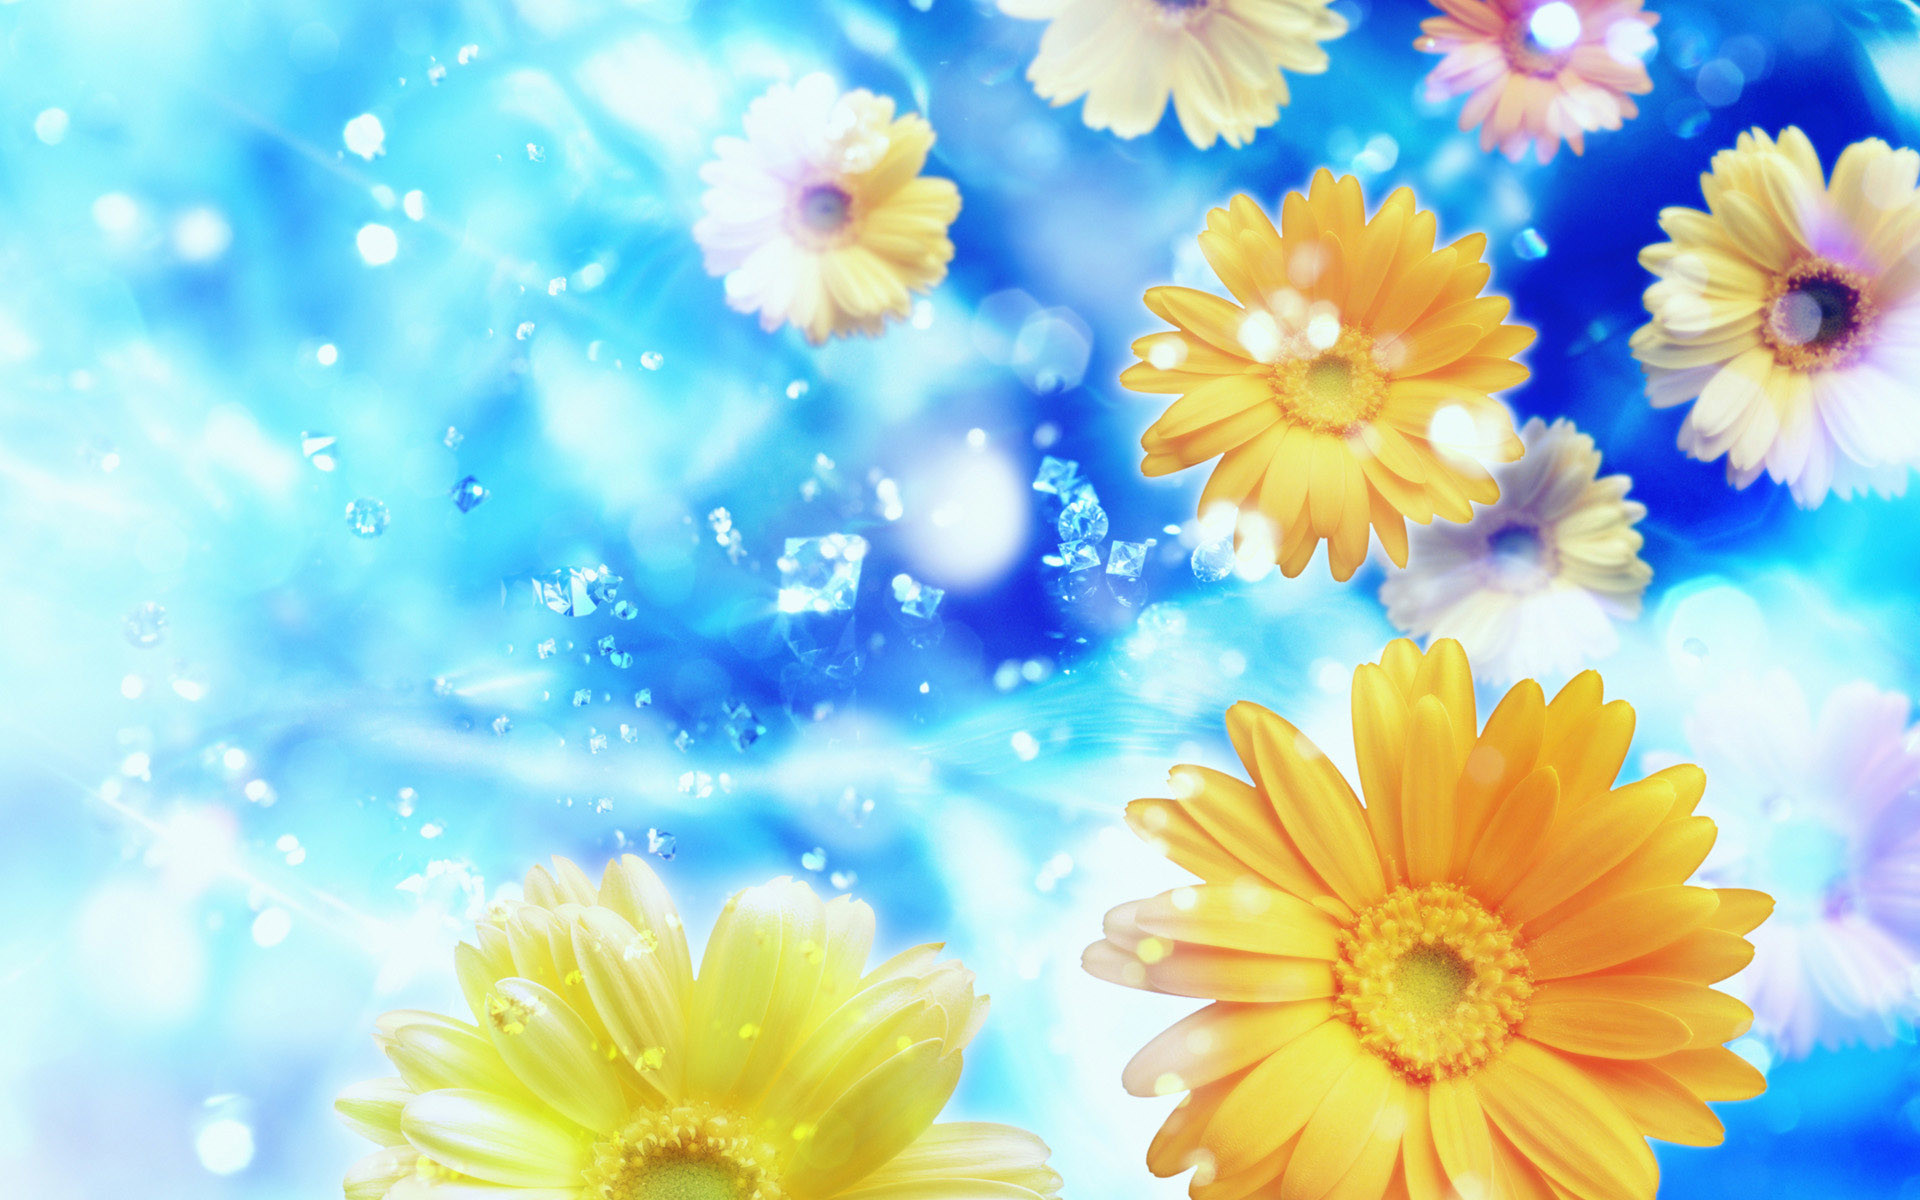 Res: 1920x1200, Best Background Wallpaper Flowers High Resolution Widescreen For Mobile  Phones